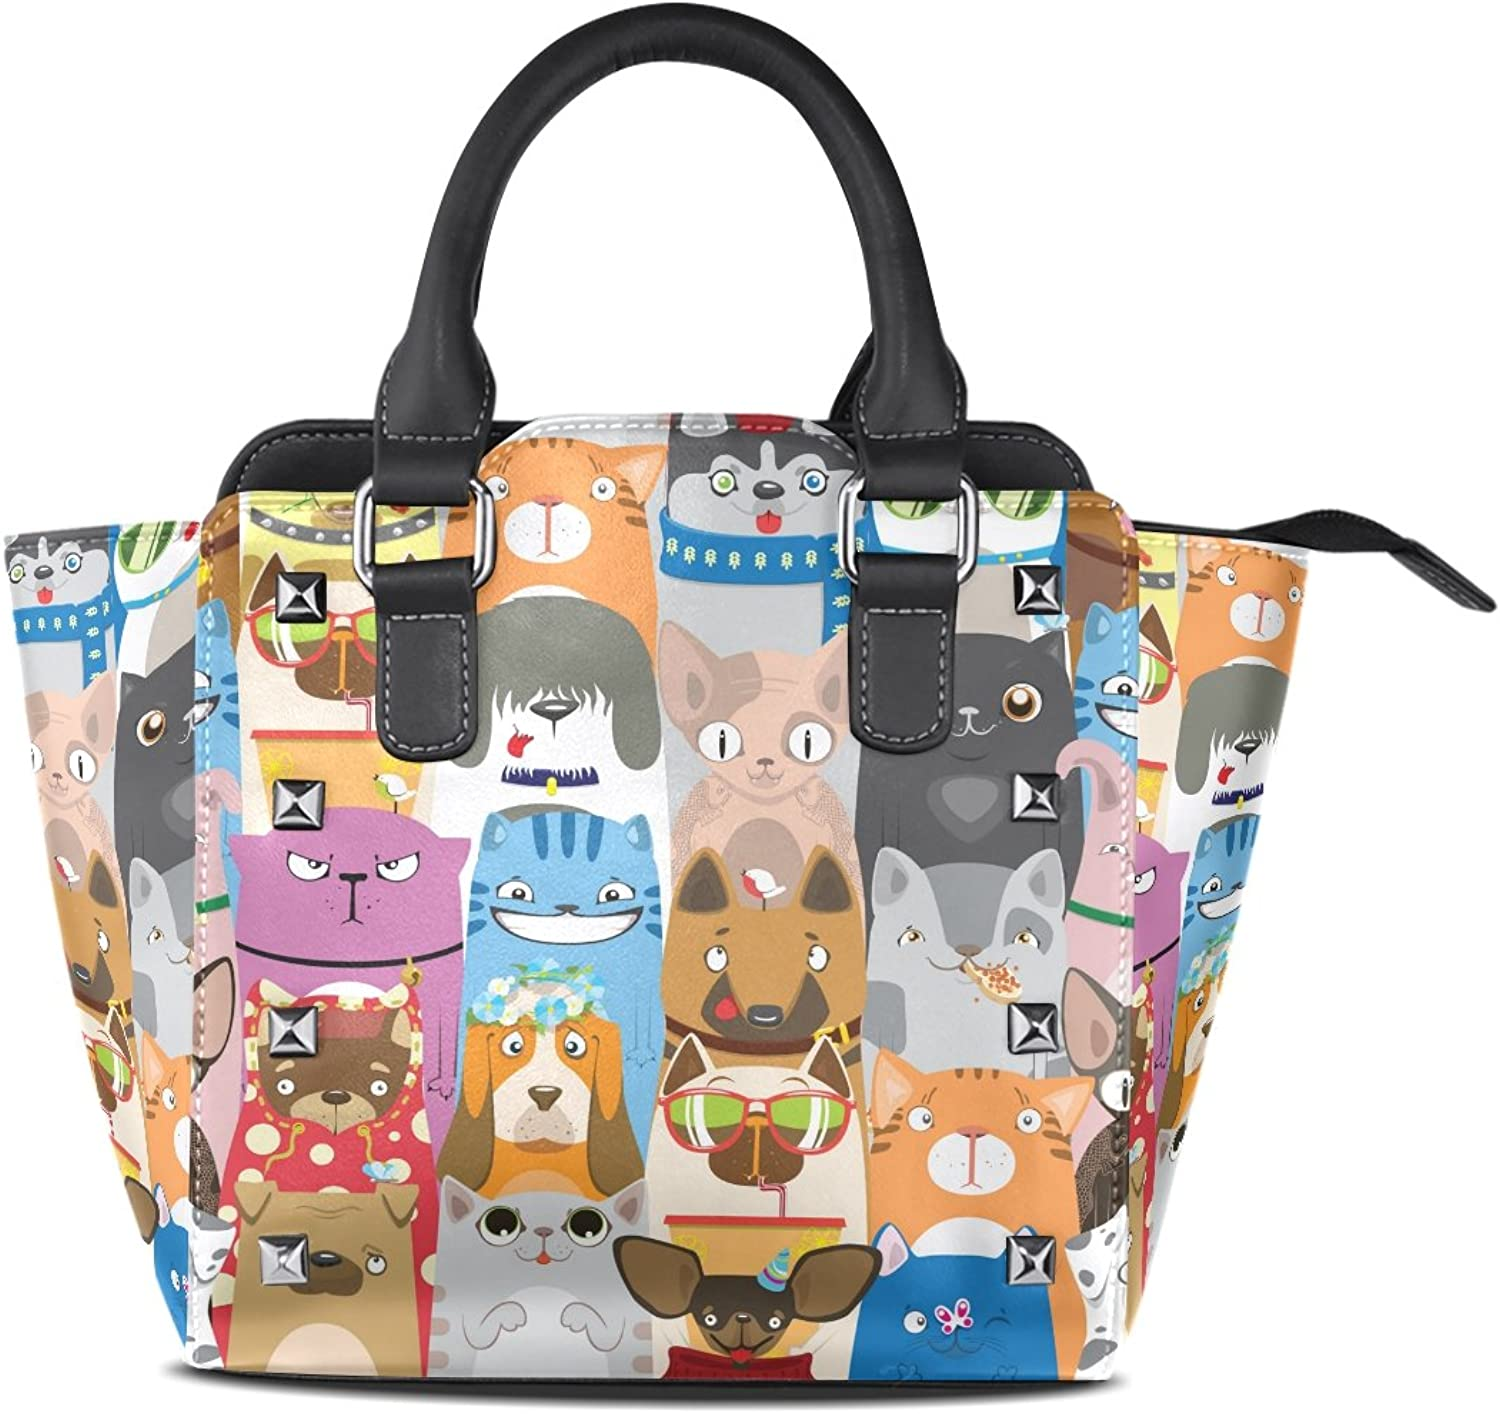 Sunlome colorful Funny Cats and Dogs Print Handbags Women's PU Leather Top-Handle Shoulder Bags